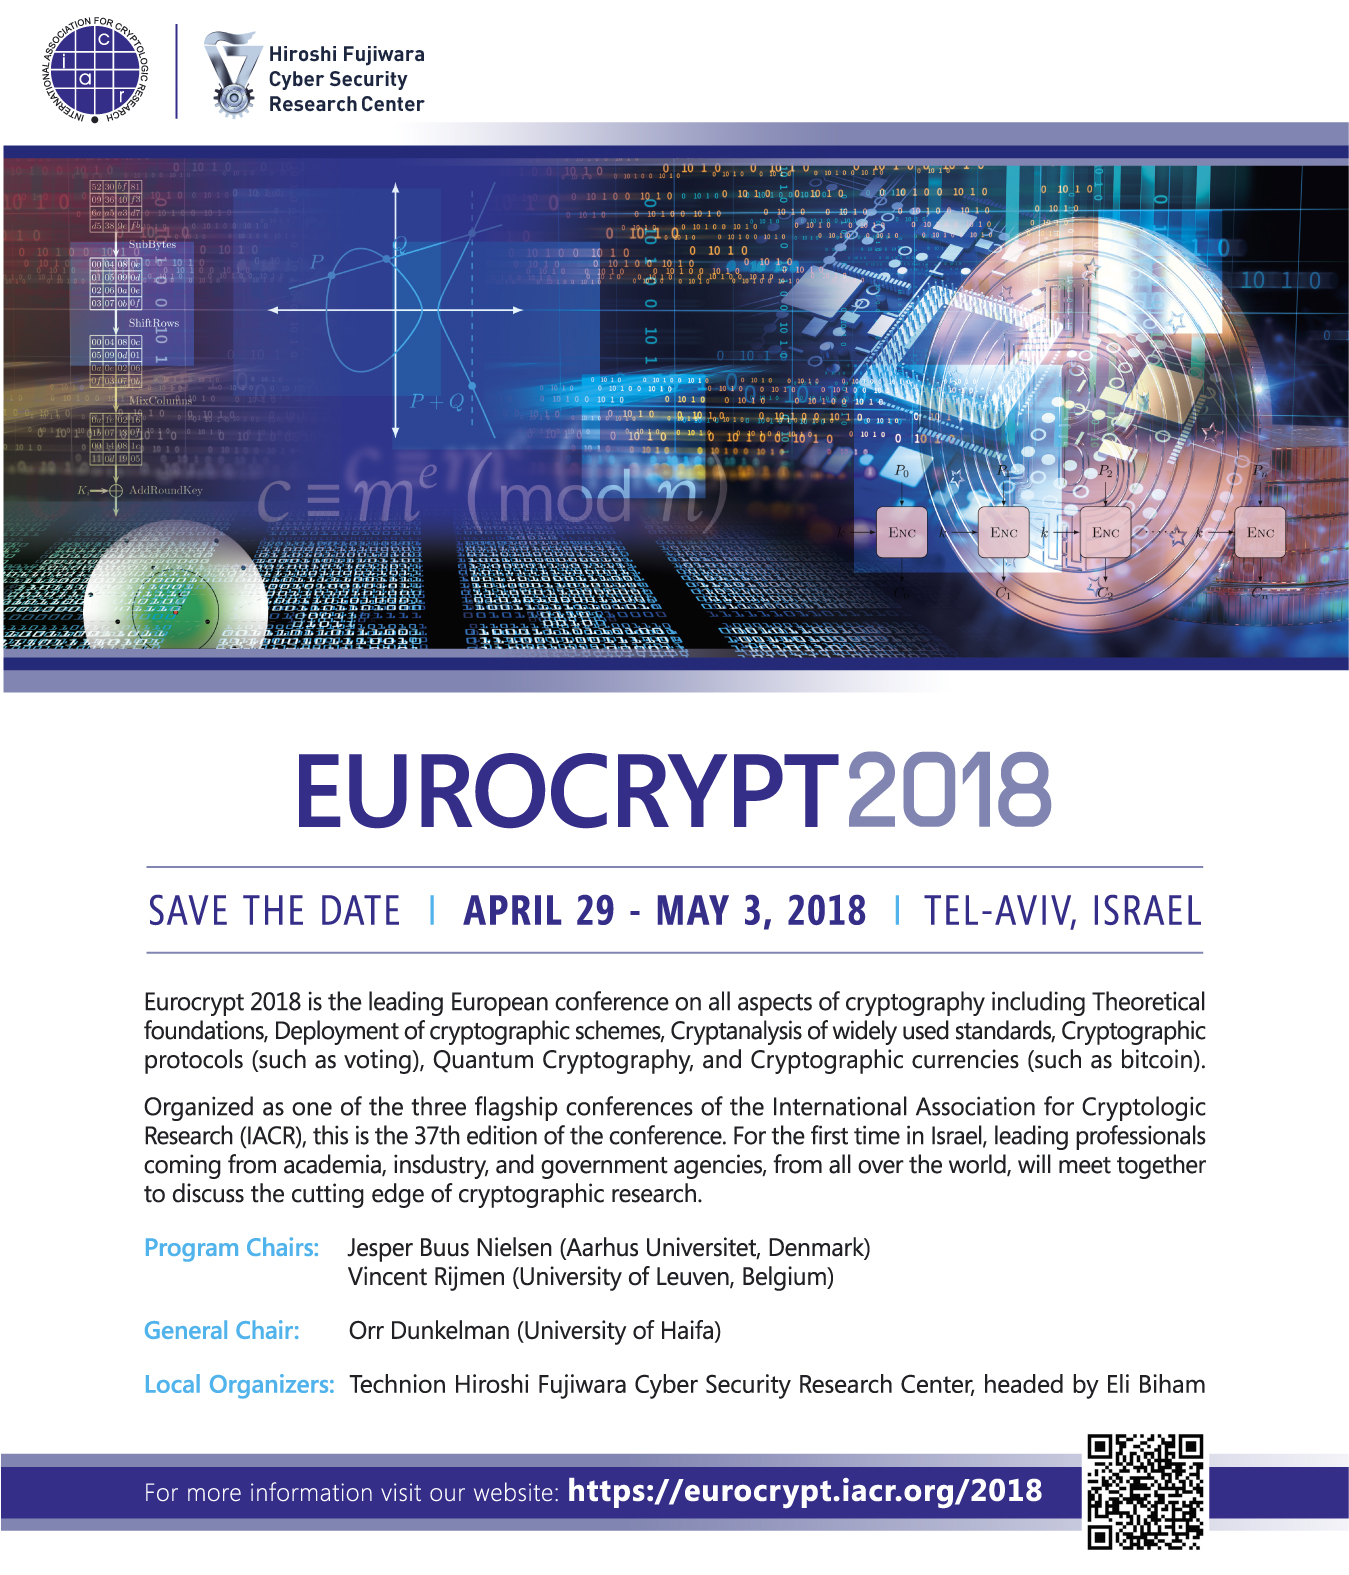 Eurocrypt2018 save the date